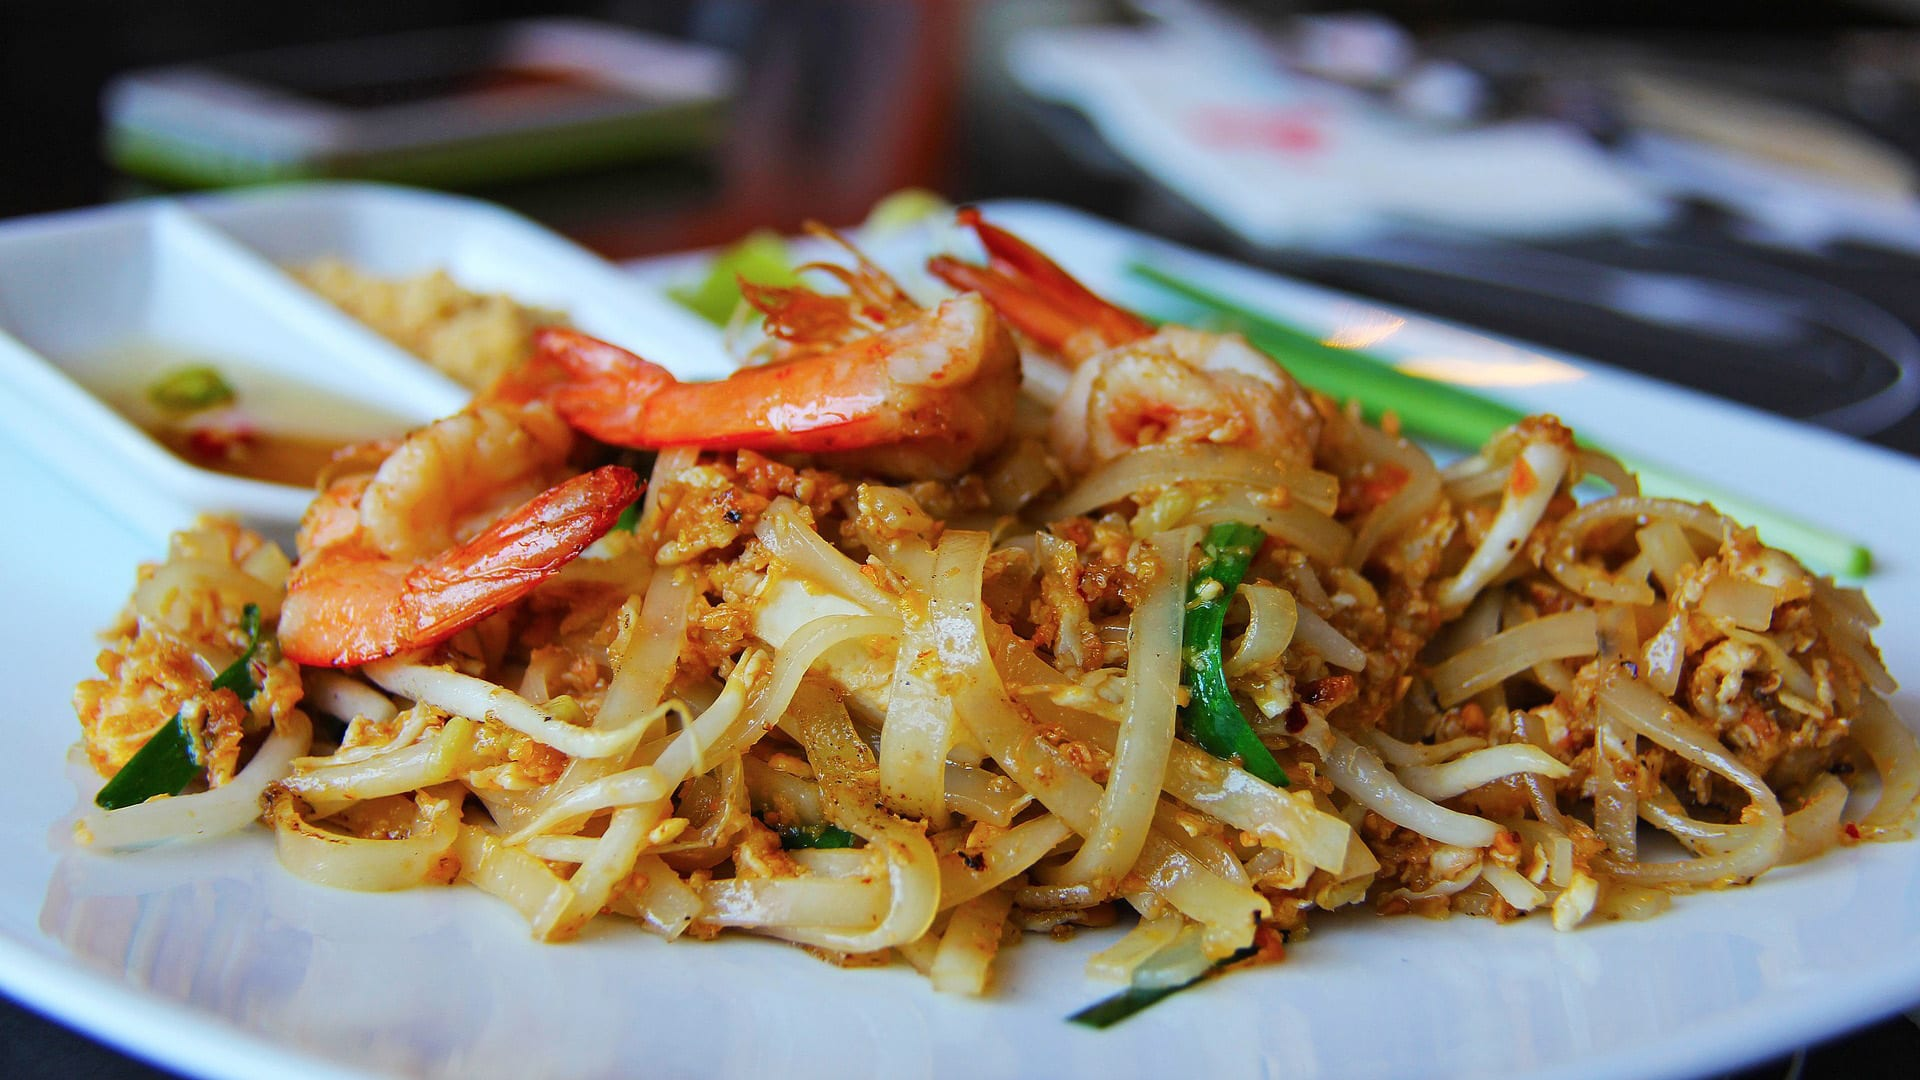 Top Restaurants to eat in Bangkok